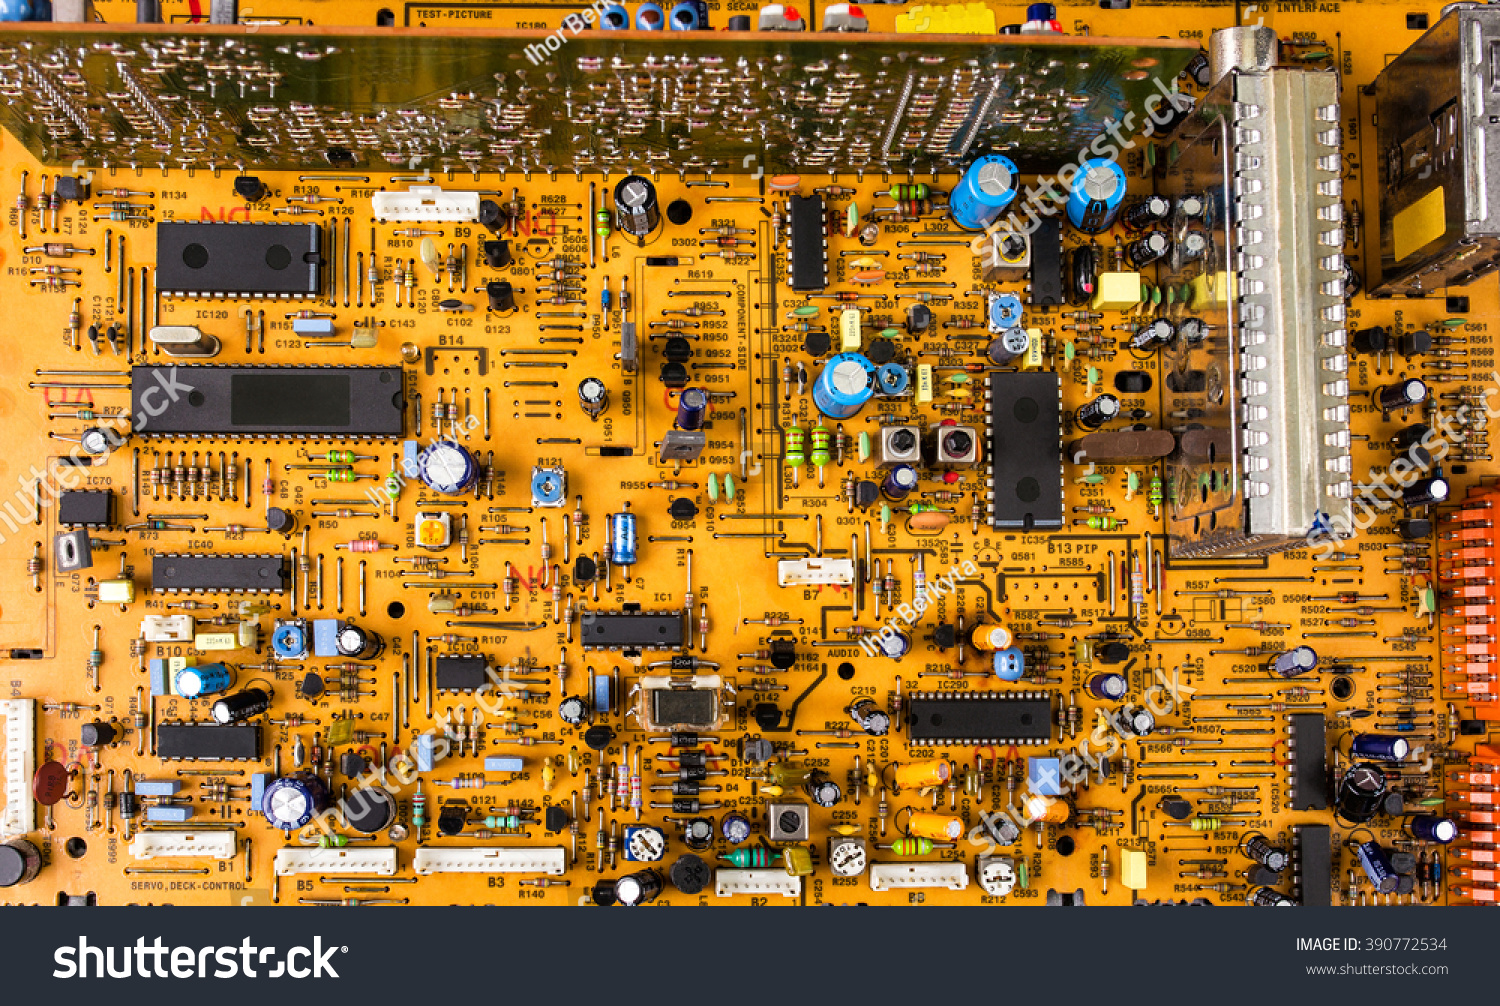 Vintage Orange Printed Circuit Board Pcb Stock Photo Edit Now Production Buy Boardpcb With Many Electrical Components